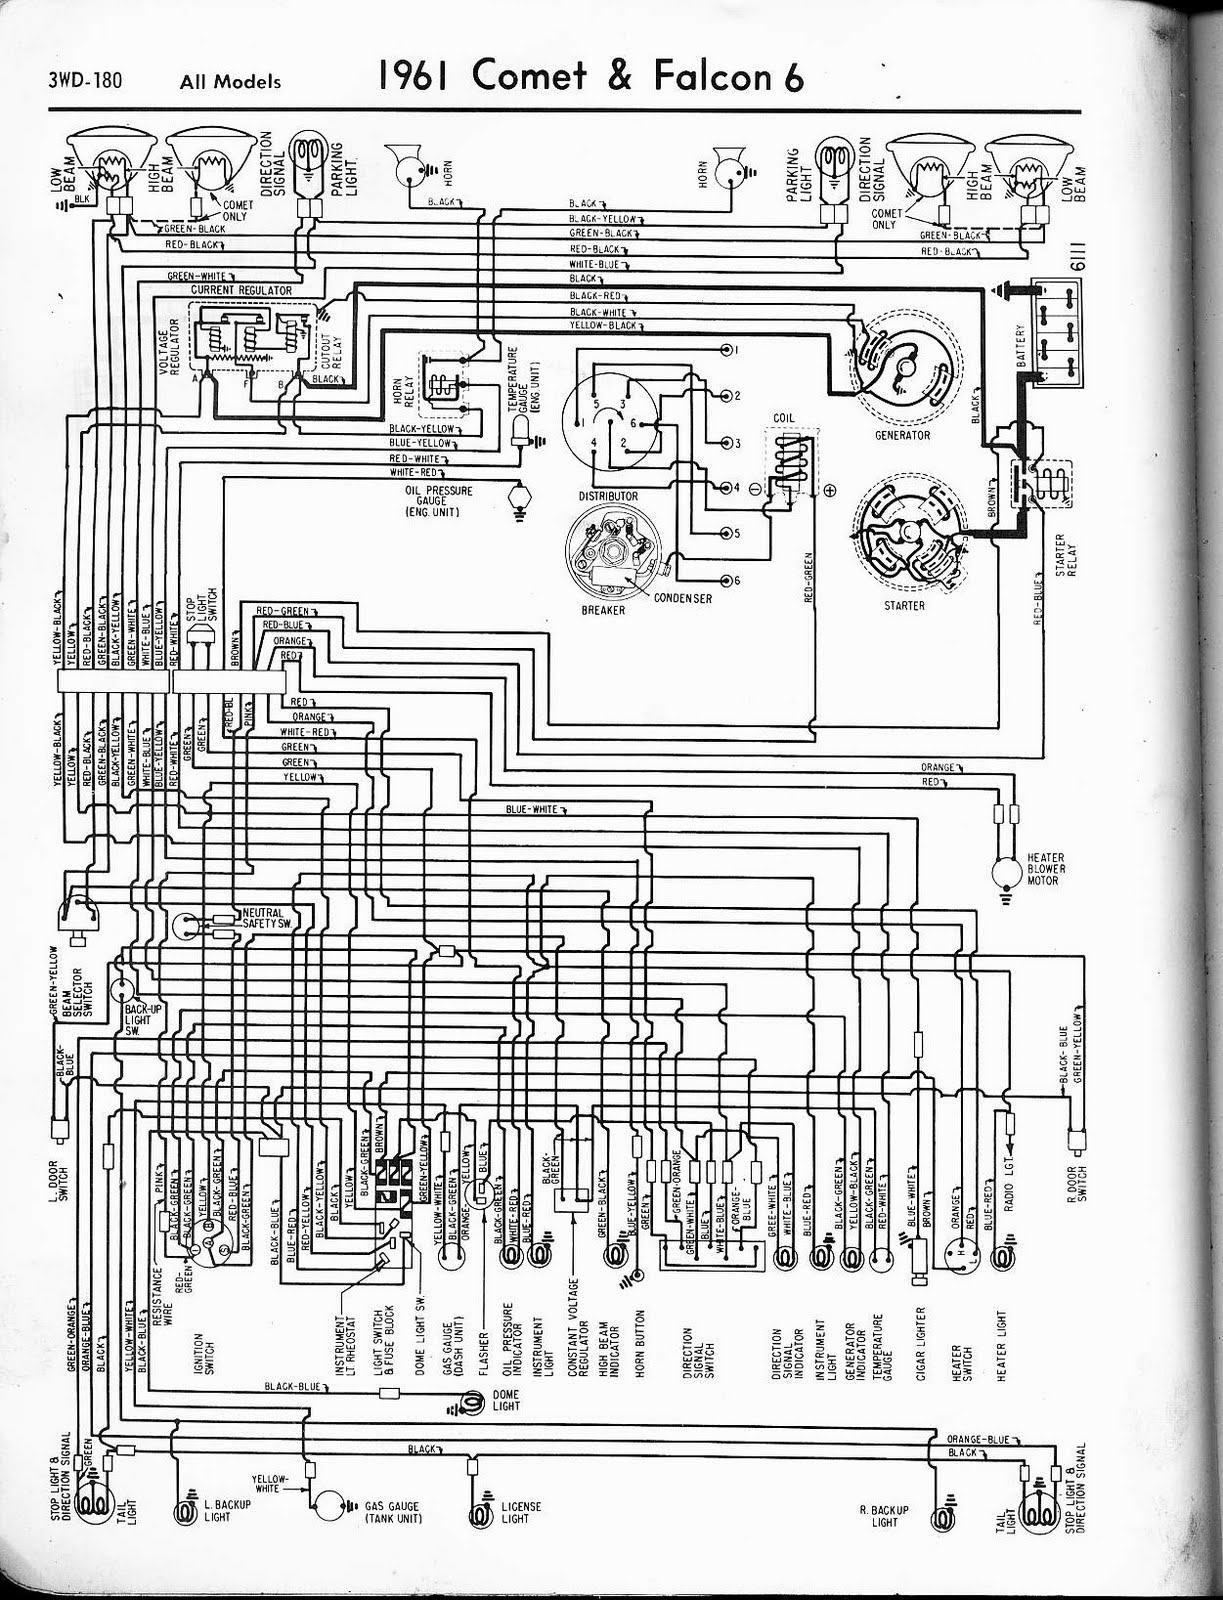 dose your car still have a ballast resistor? below is 1961 wiring diagram